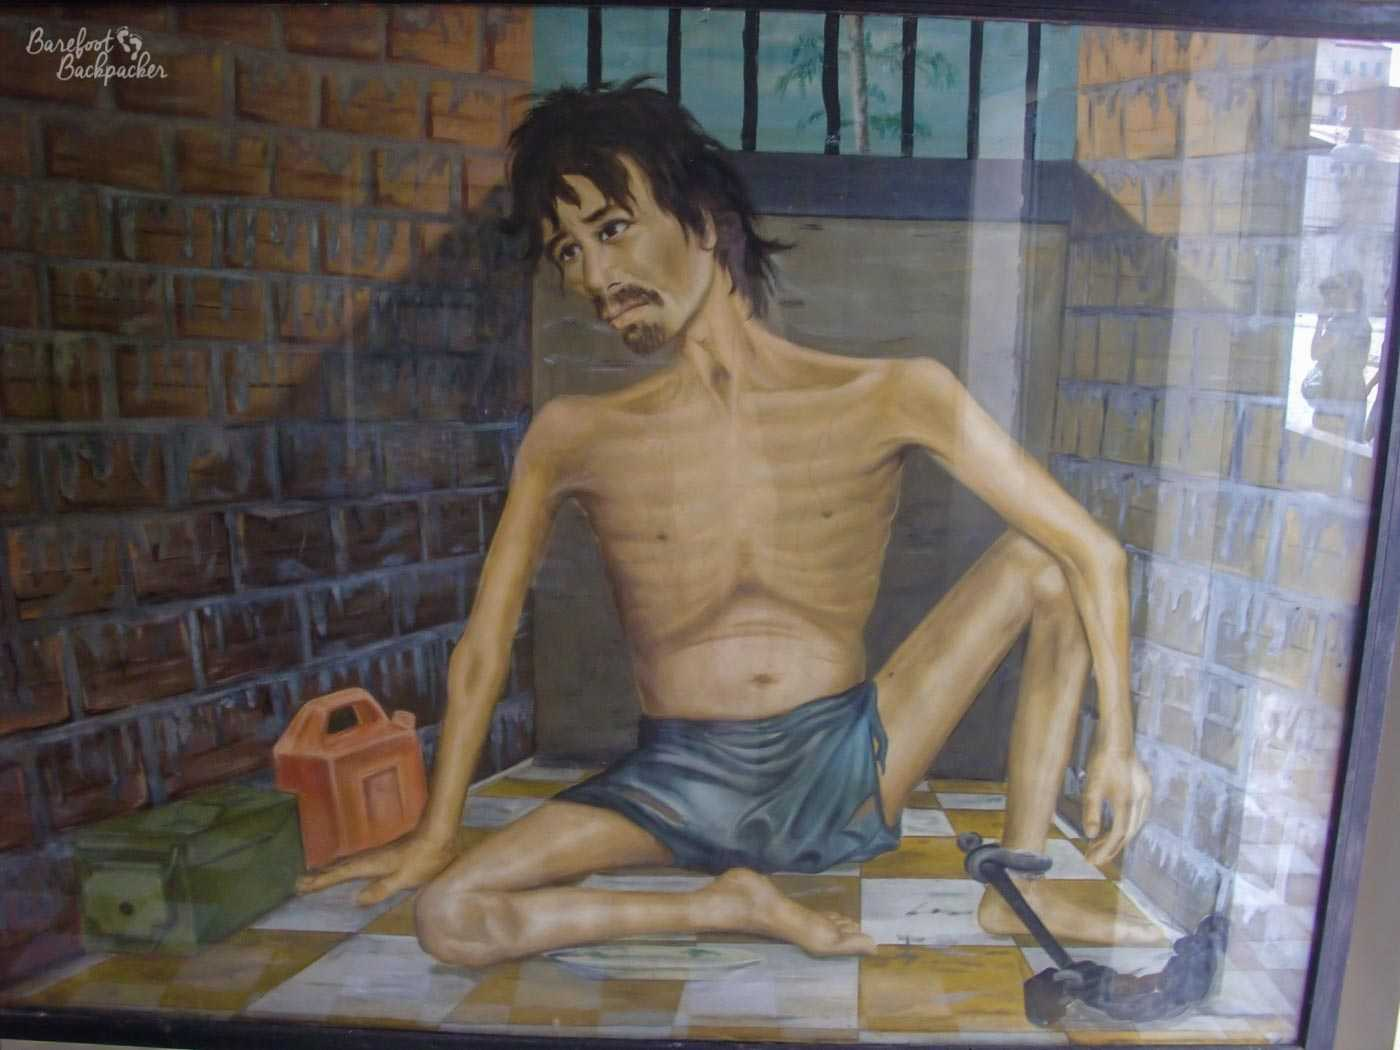 Painting by one of the few survivors of Tuol Sleng. It's one of the milder ones, showing an emaciated man in a cramped cell, bars behind him. His left ankle is shackled to a chain, and he is only wearing a loincloth. The only other things in the cell are a box and a jerry can.